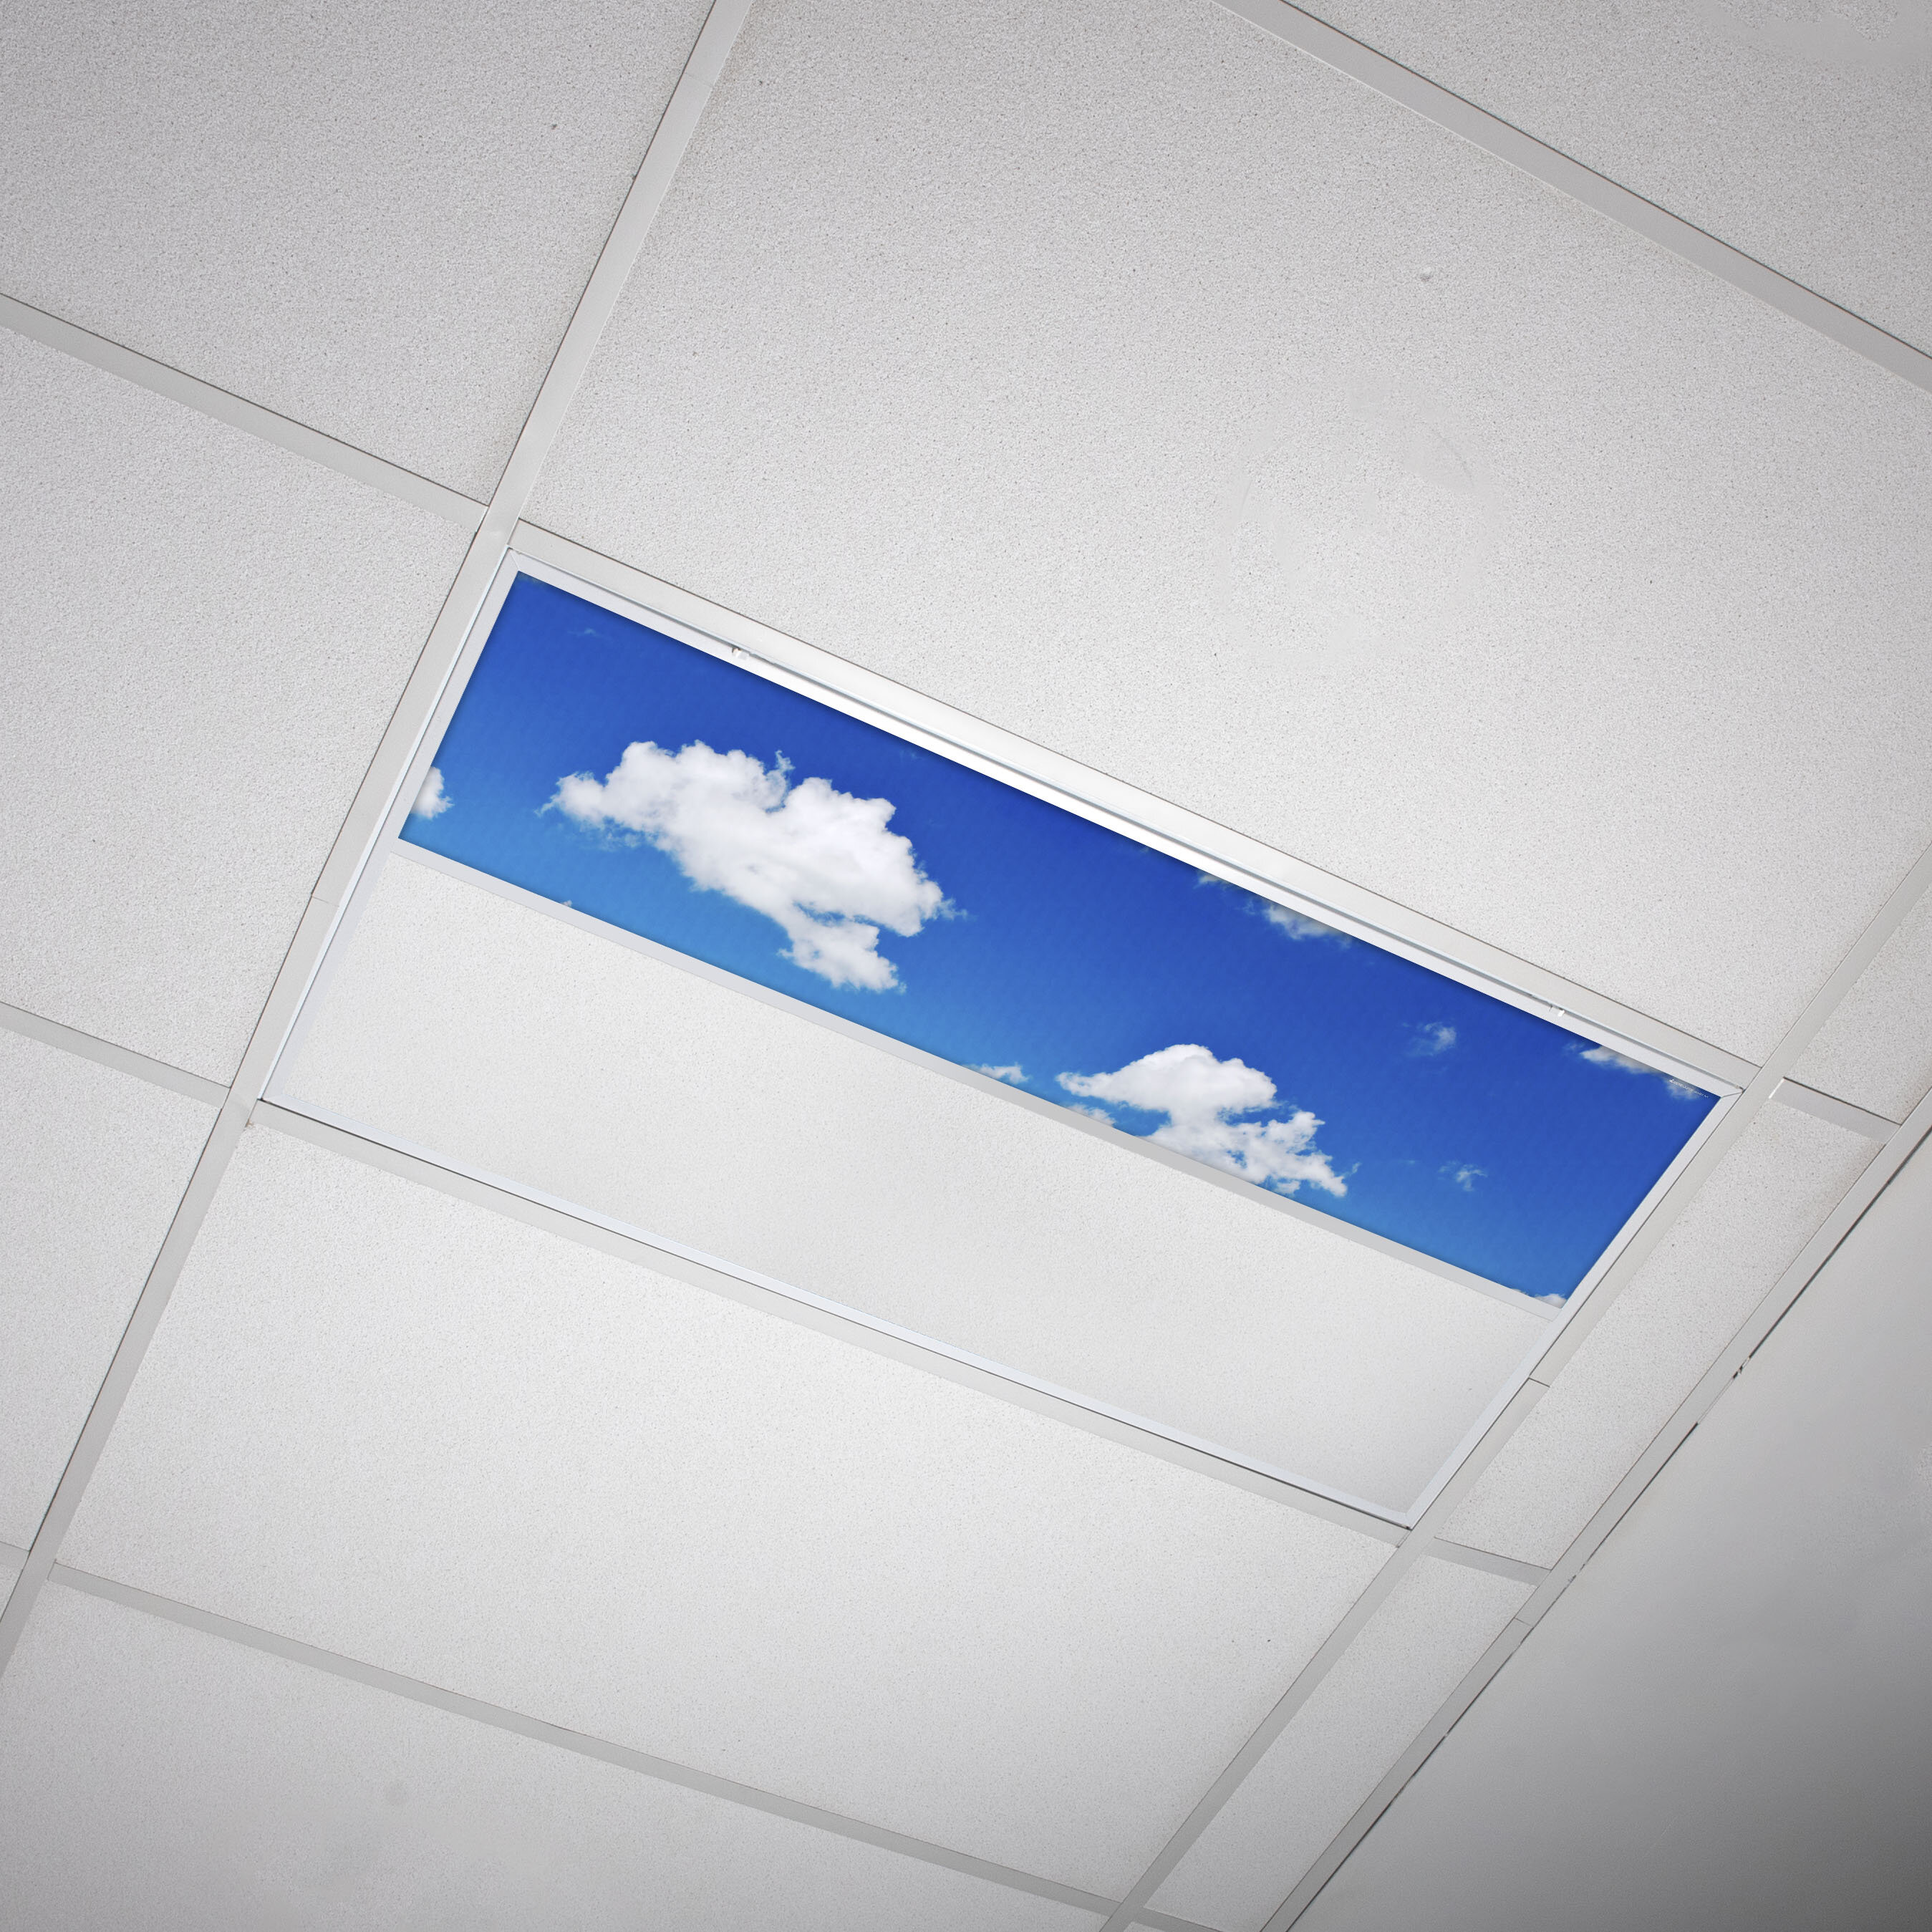 Octo Lights Fluorescent Light Covers Flexible Ceiling Light Diffuser Panels Decorative Clouds For Classrooms And Offices 012 Wayfair Ca